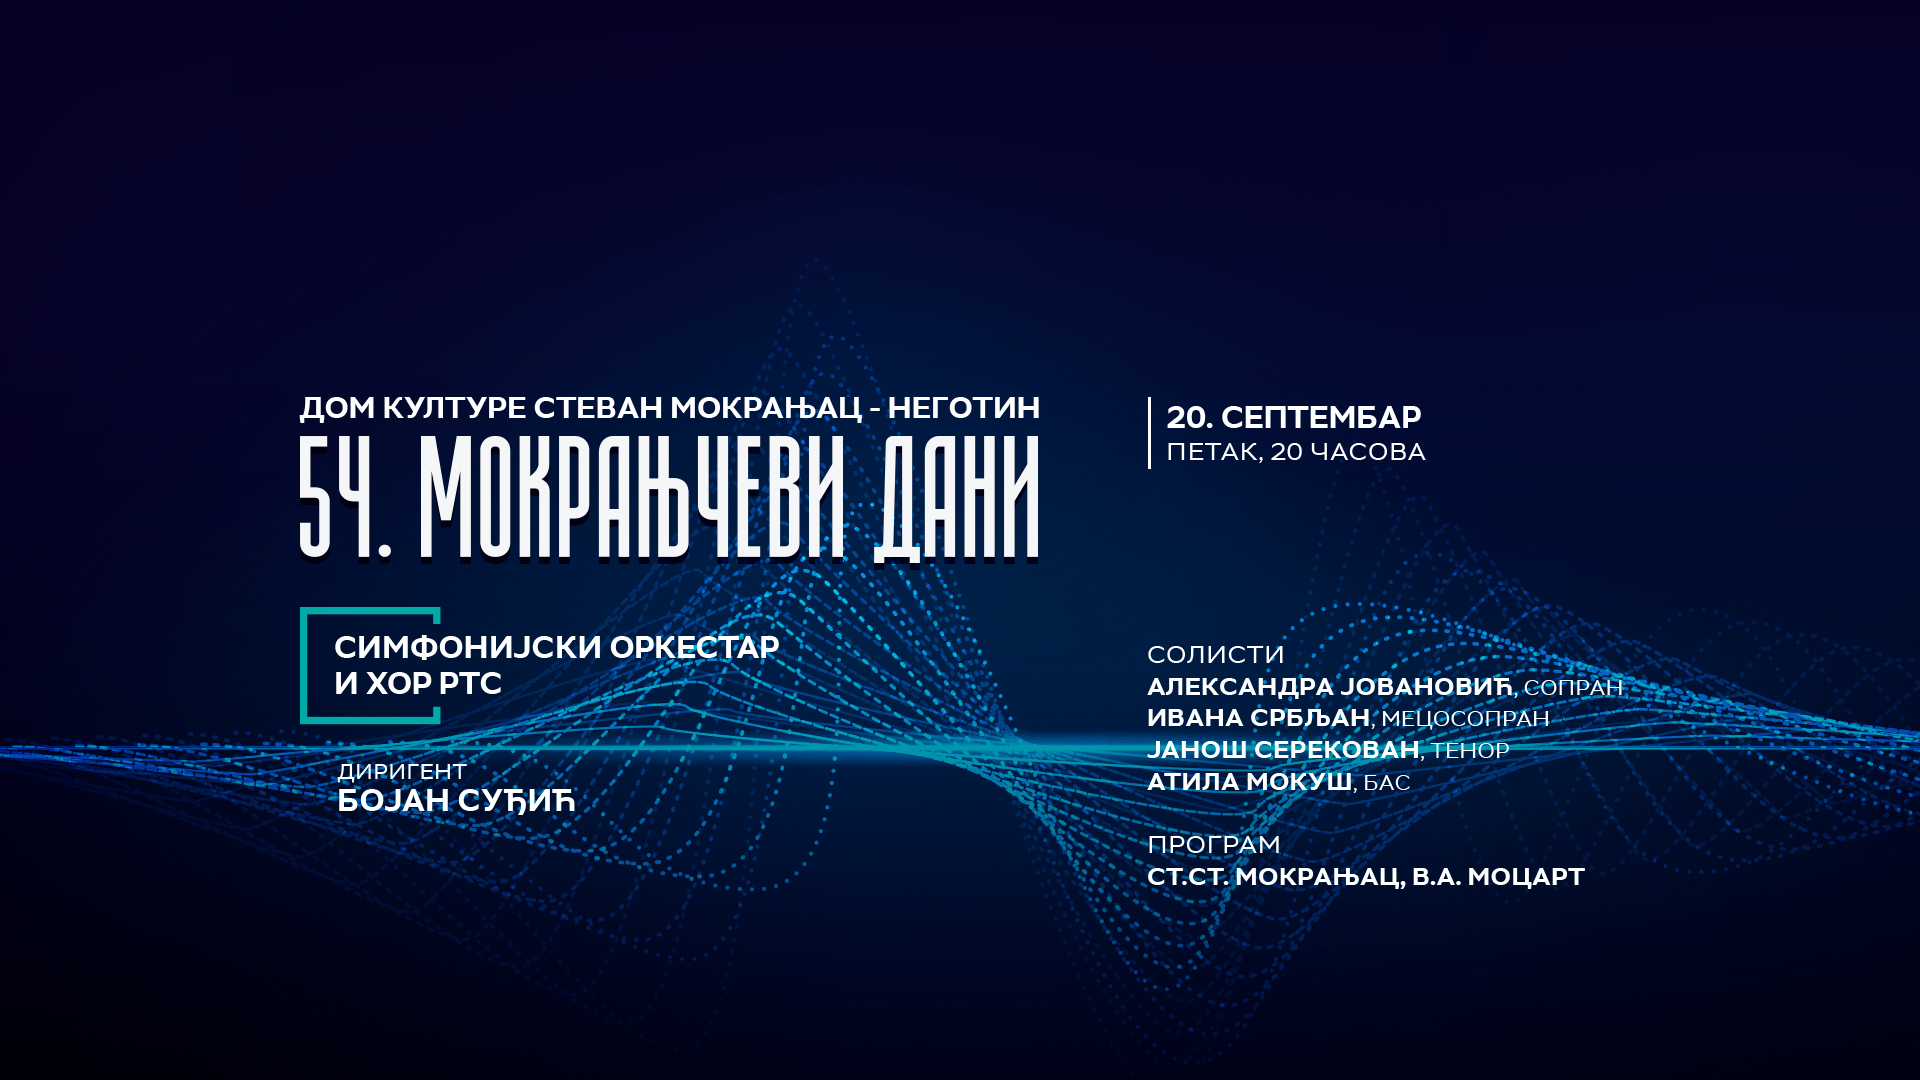 THE RTS CHOIR AND SYMPHONY ORCHESTRA CLOSE THE 54th ``MOKRANJCEVI DANI``